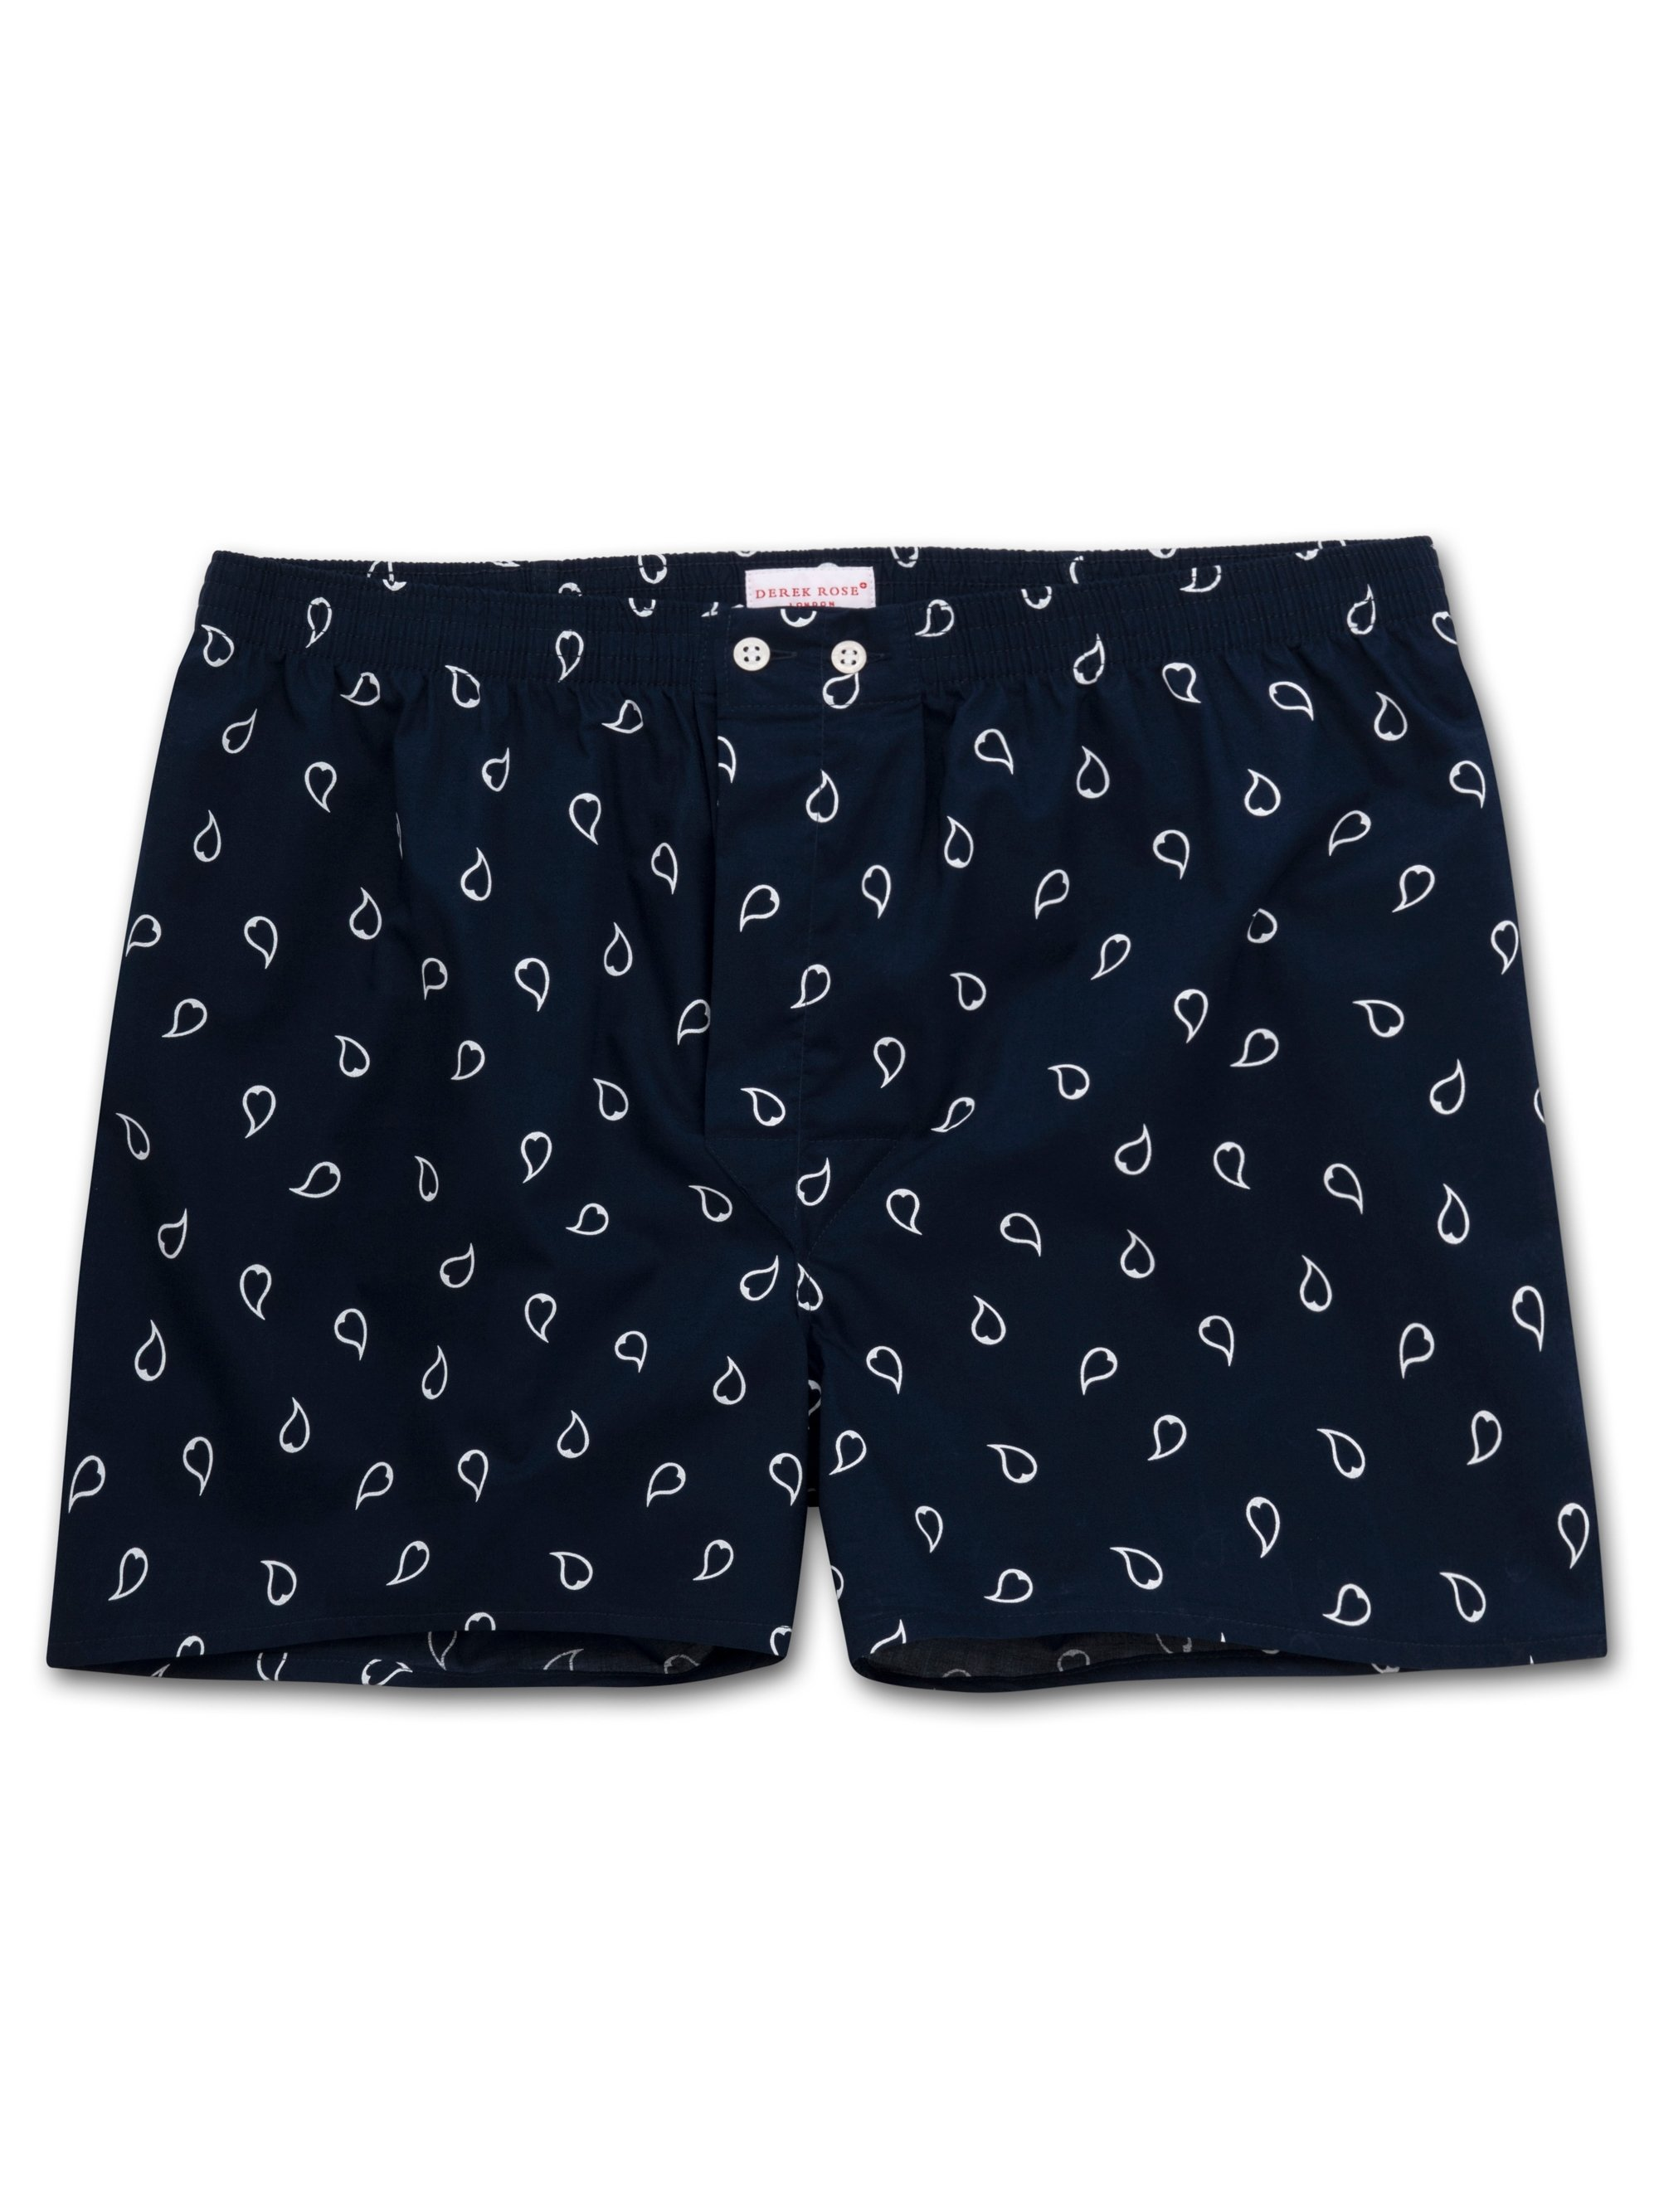 Men's Classic Fit Boxer Shorts Nelson 74 Cotton Batiste Navy